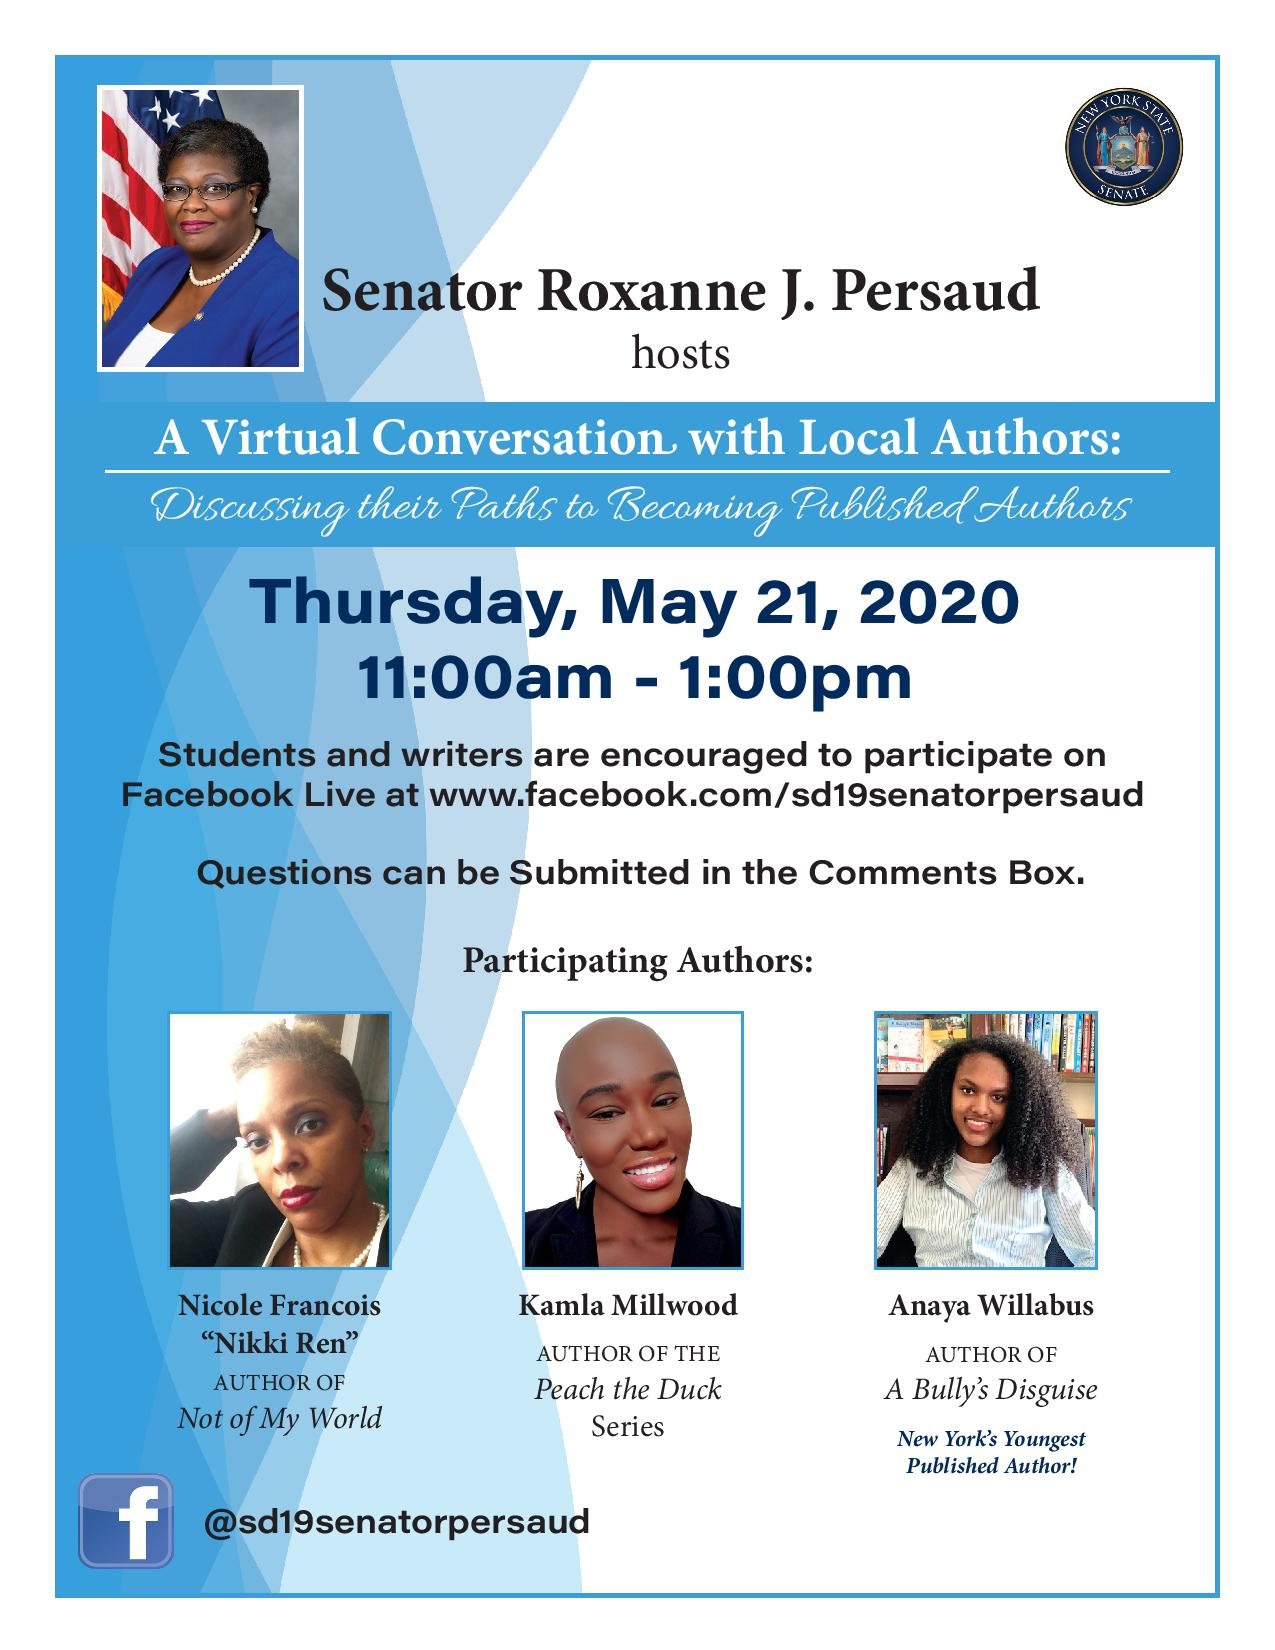 persaud_virtual_conversation_with_authors_flyer.jpg